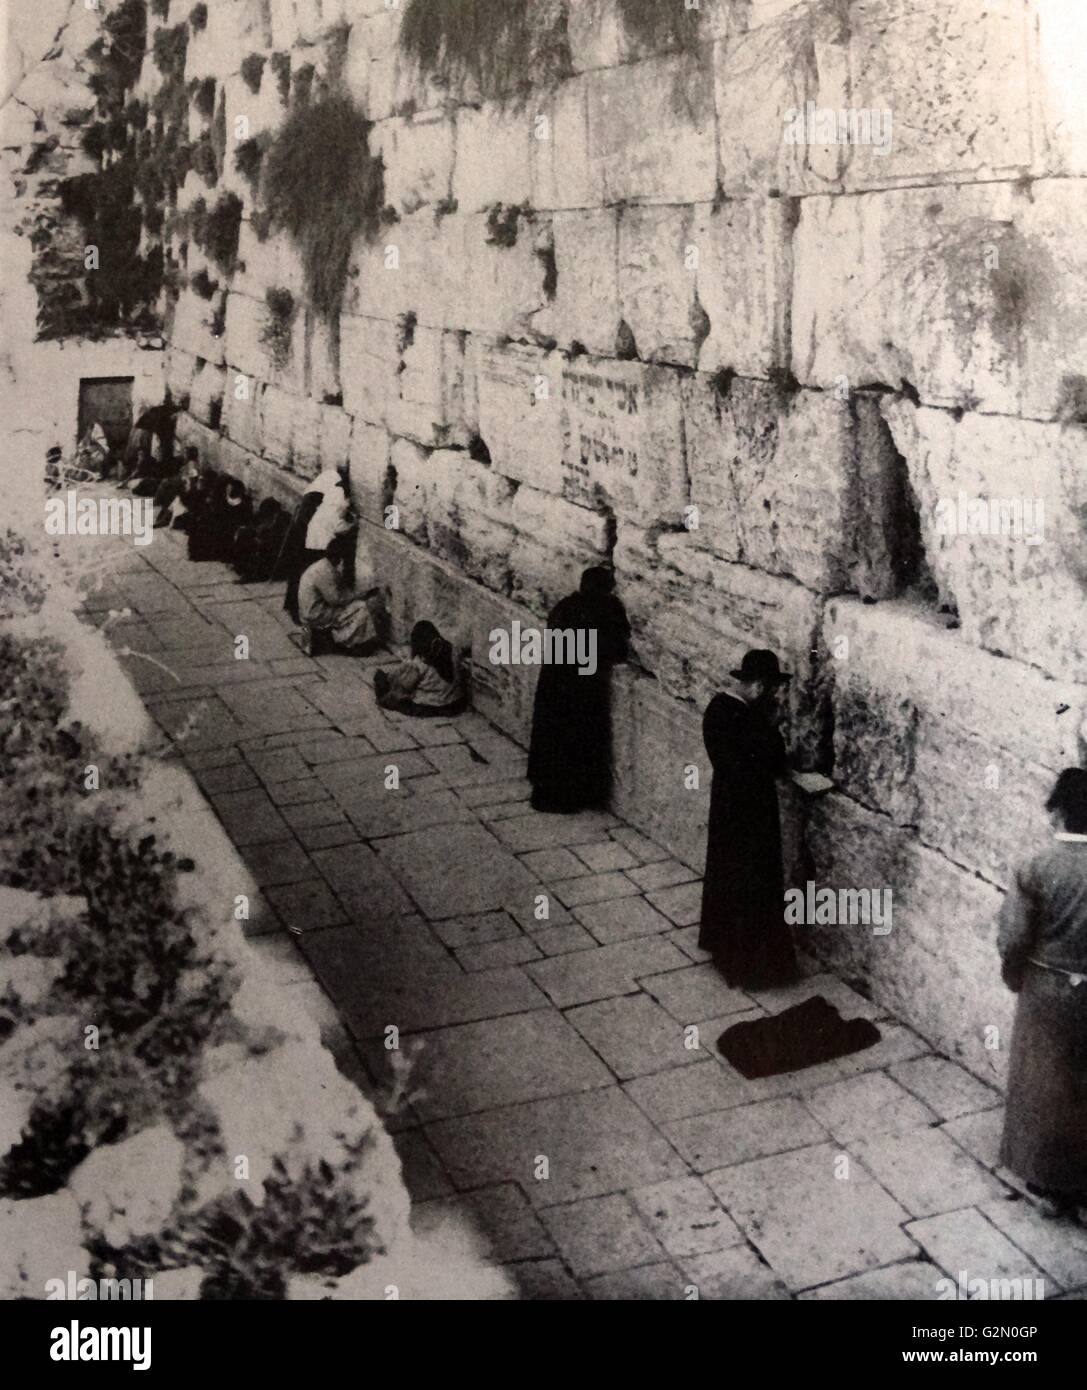 Jews praying at the western wall in Jerusalem during the British Mandate 1930 - Stock Image